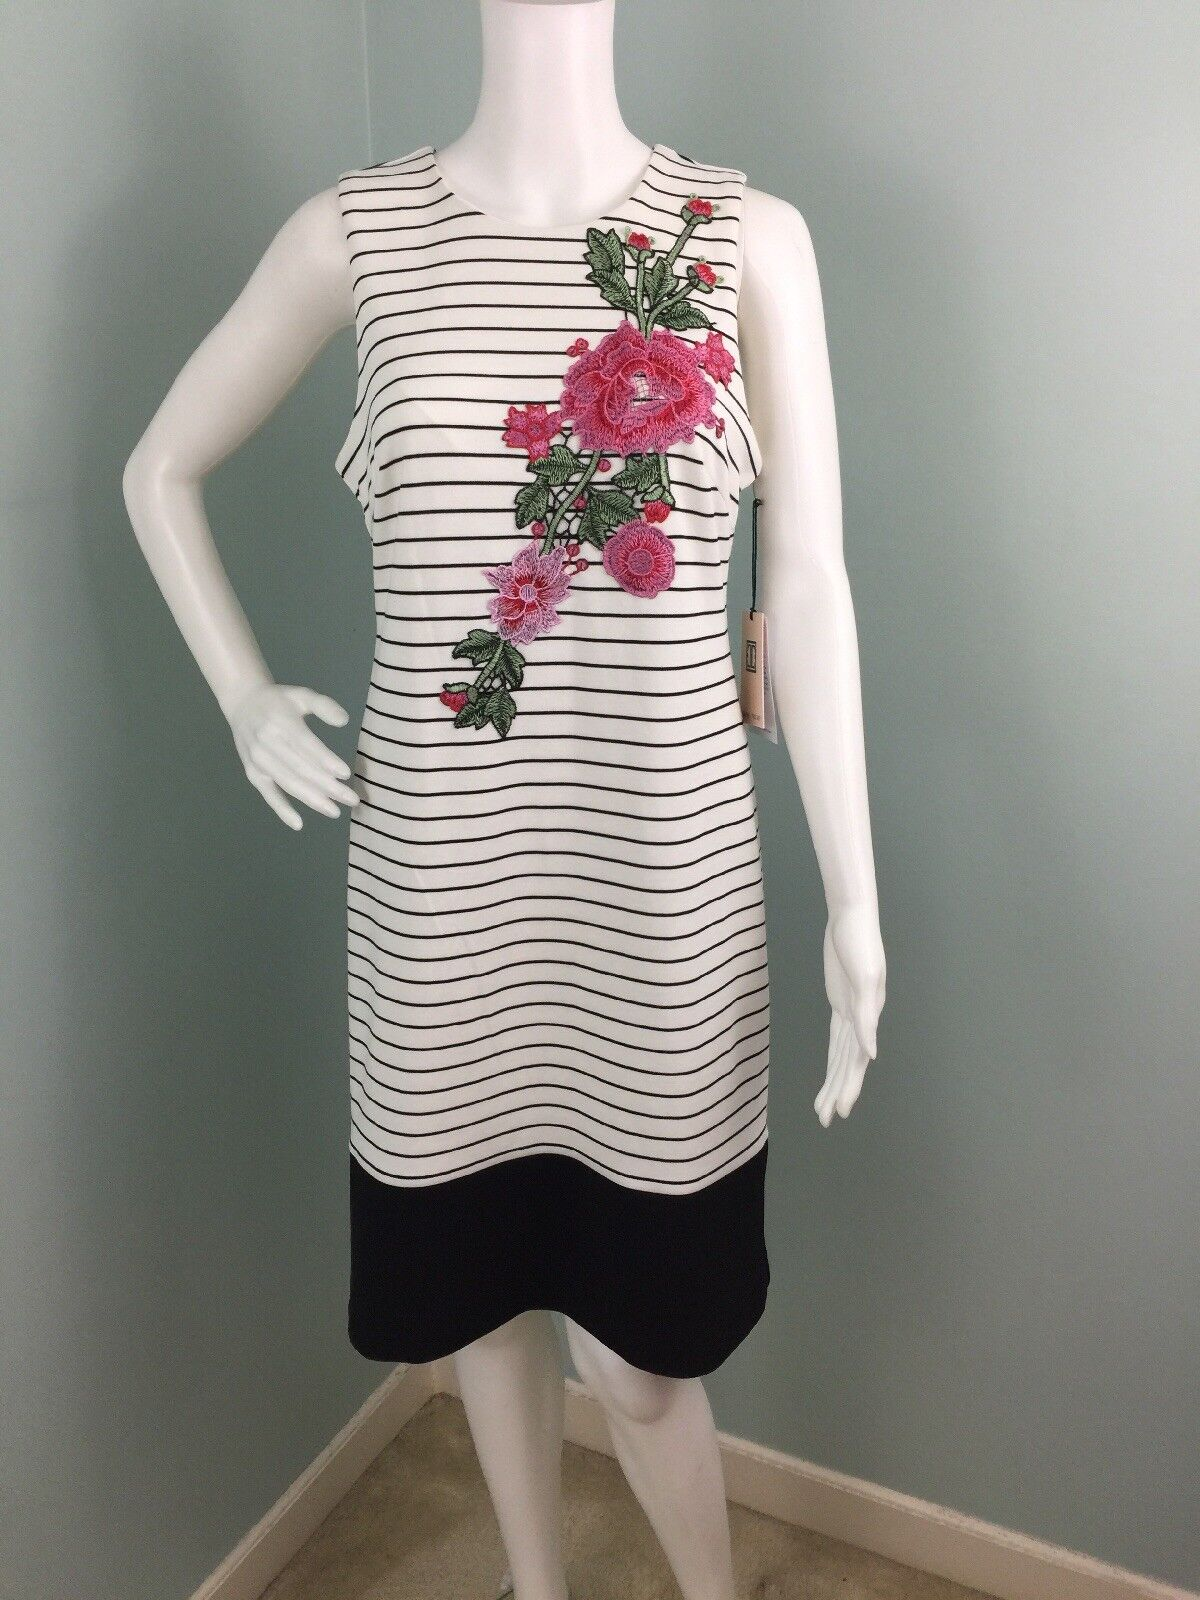 NWT Womens Ivanka Trump Sleeveless Striped Floral Appliqué Sheath Dress Sz 8